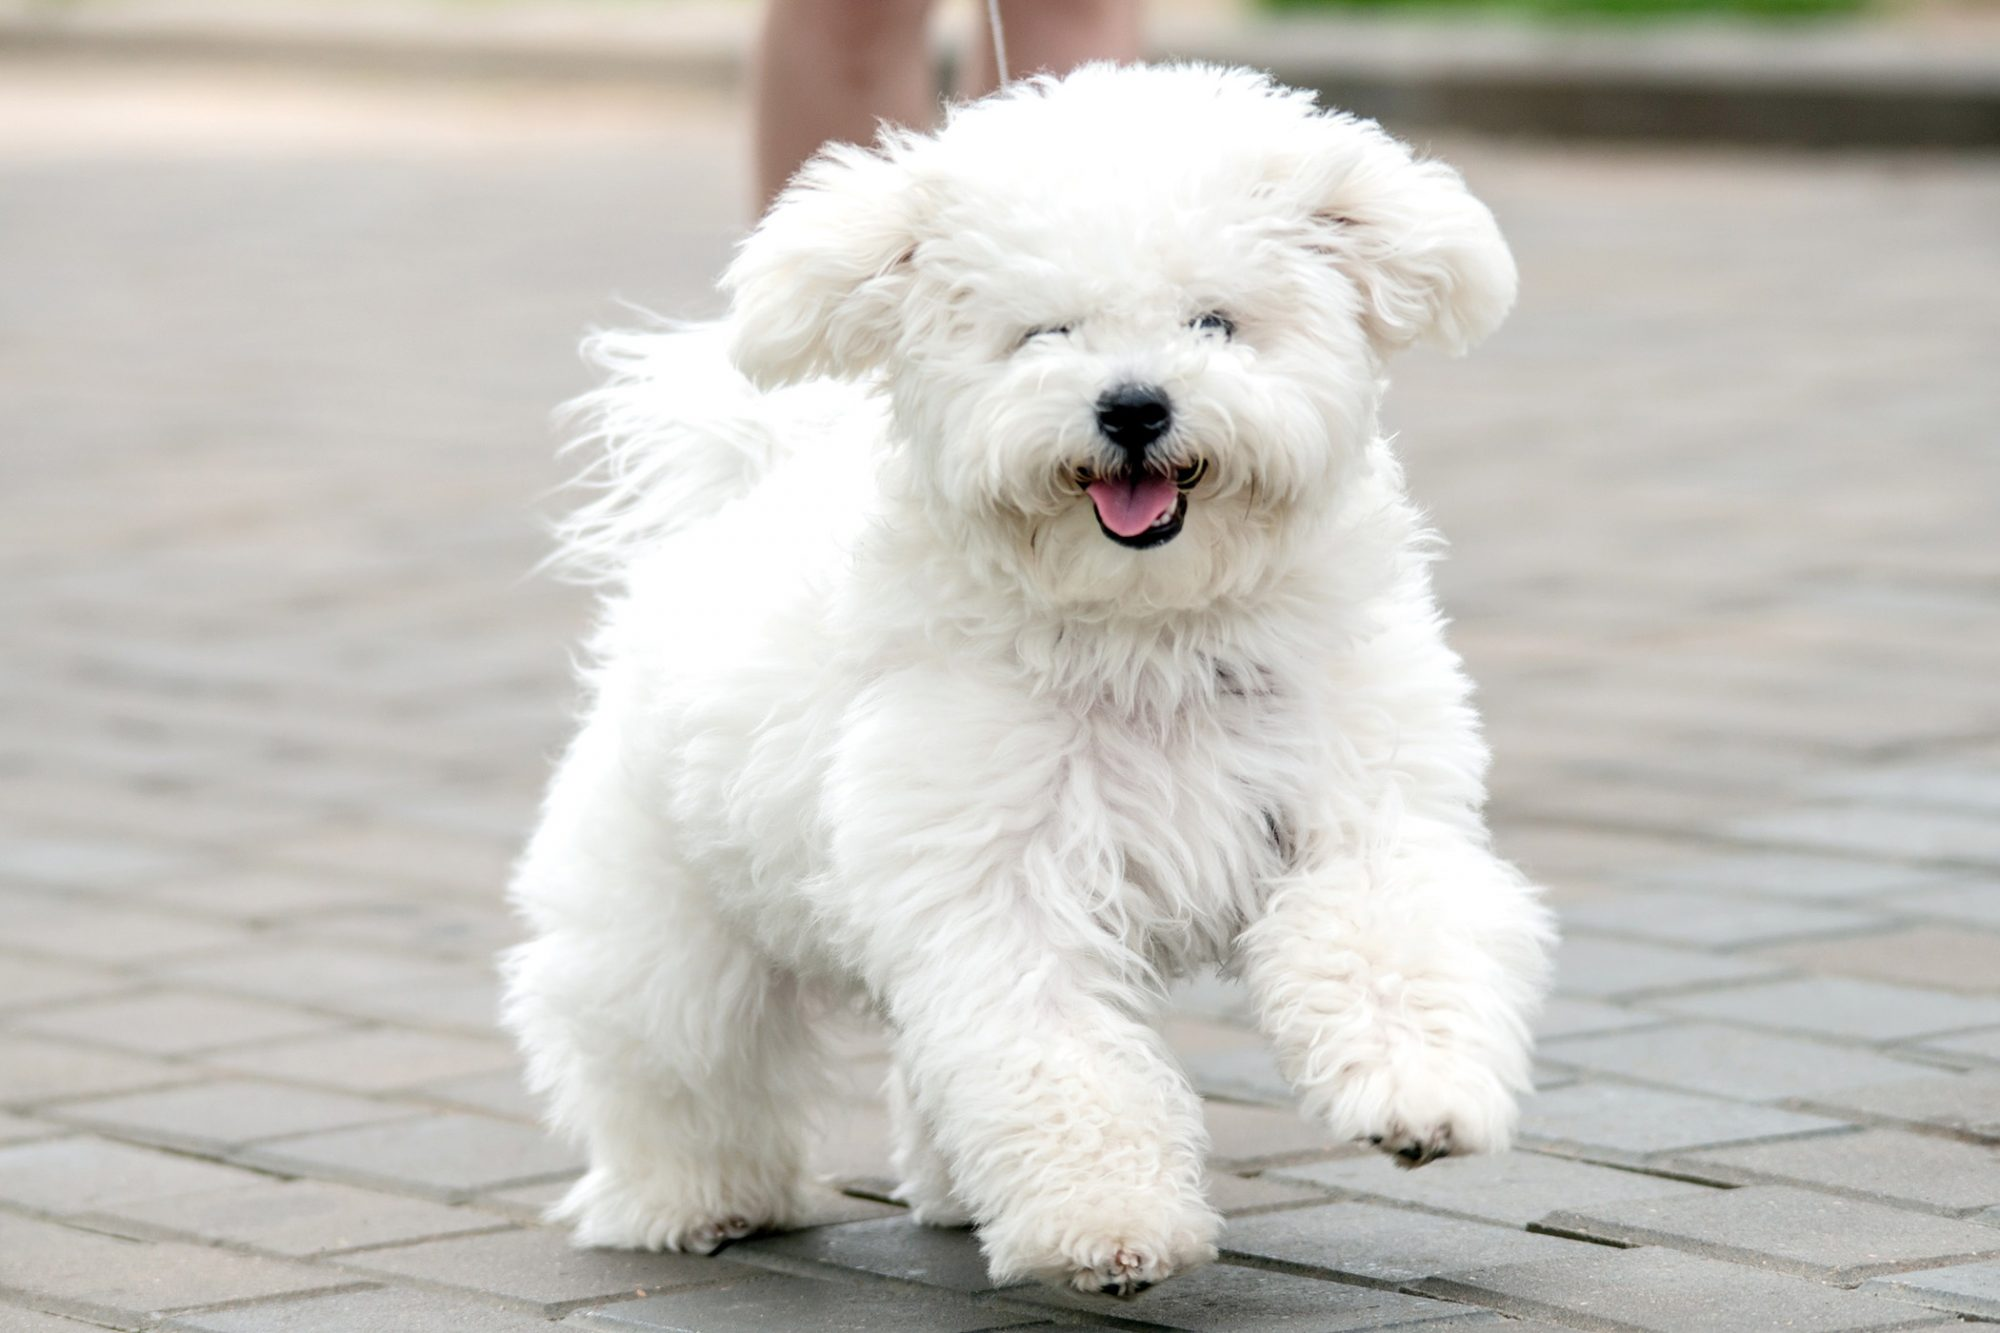 Bichon Frise Best Dogs for Apartment Living